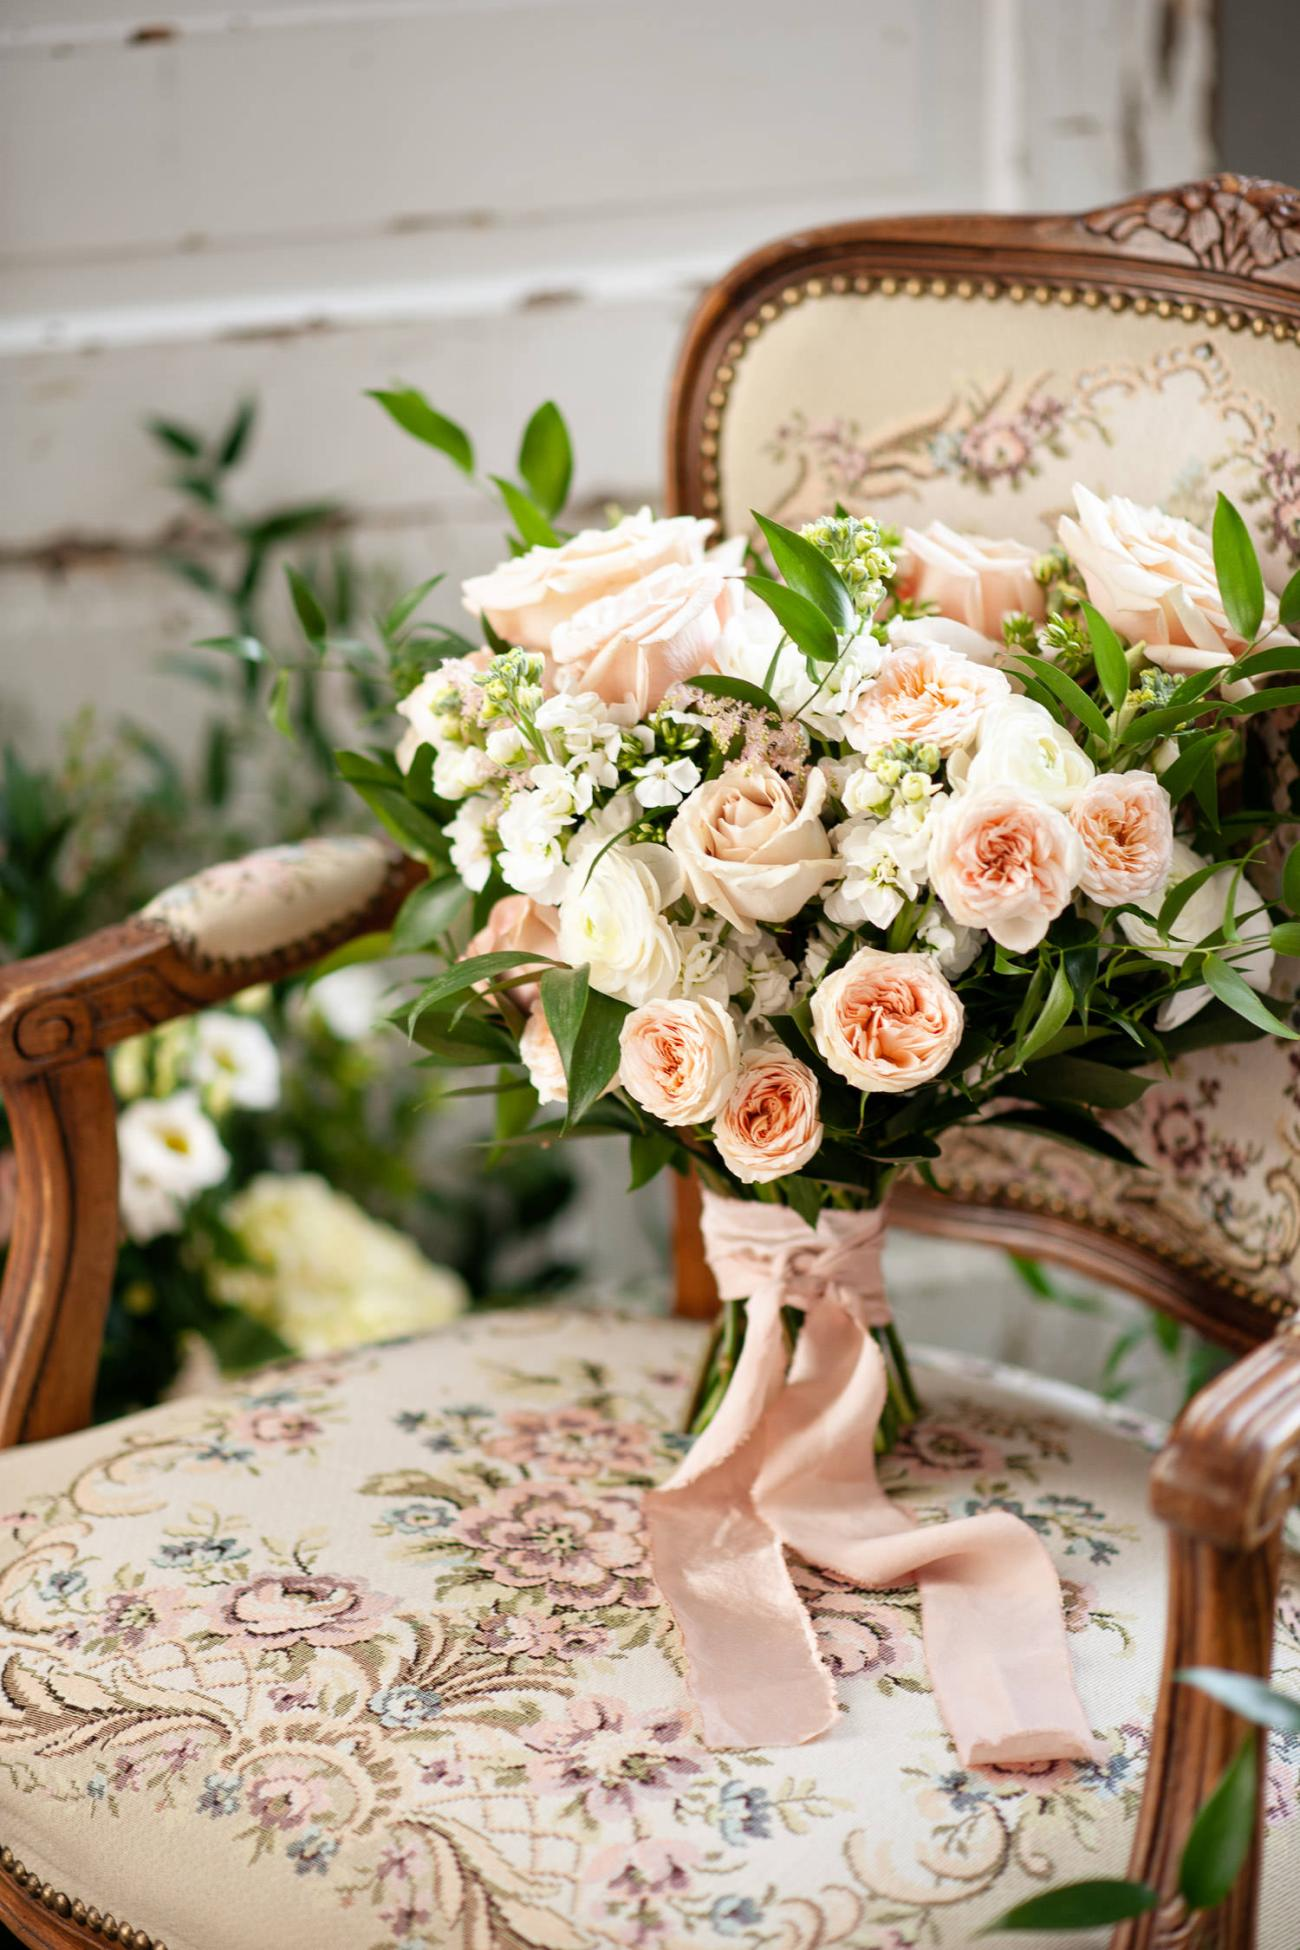 bridal bouquet sits on a vintage chair captured by Tara Whittaker Photography